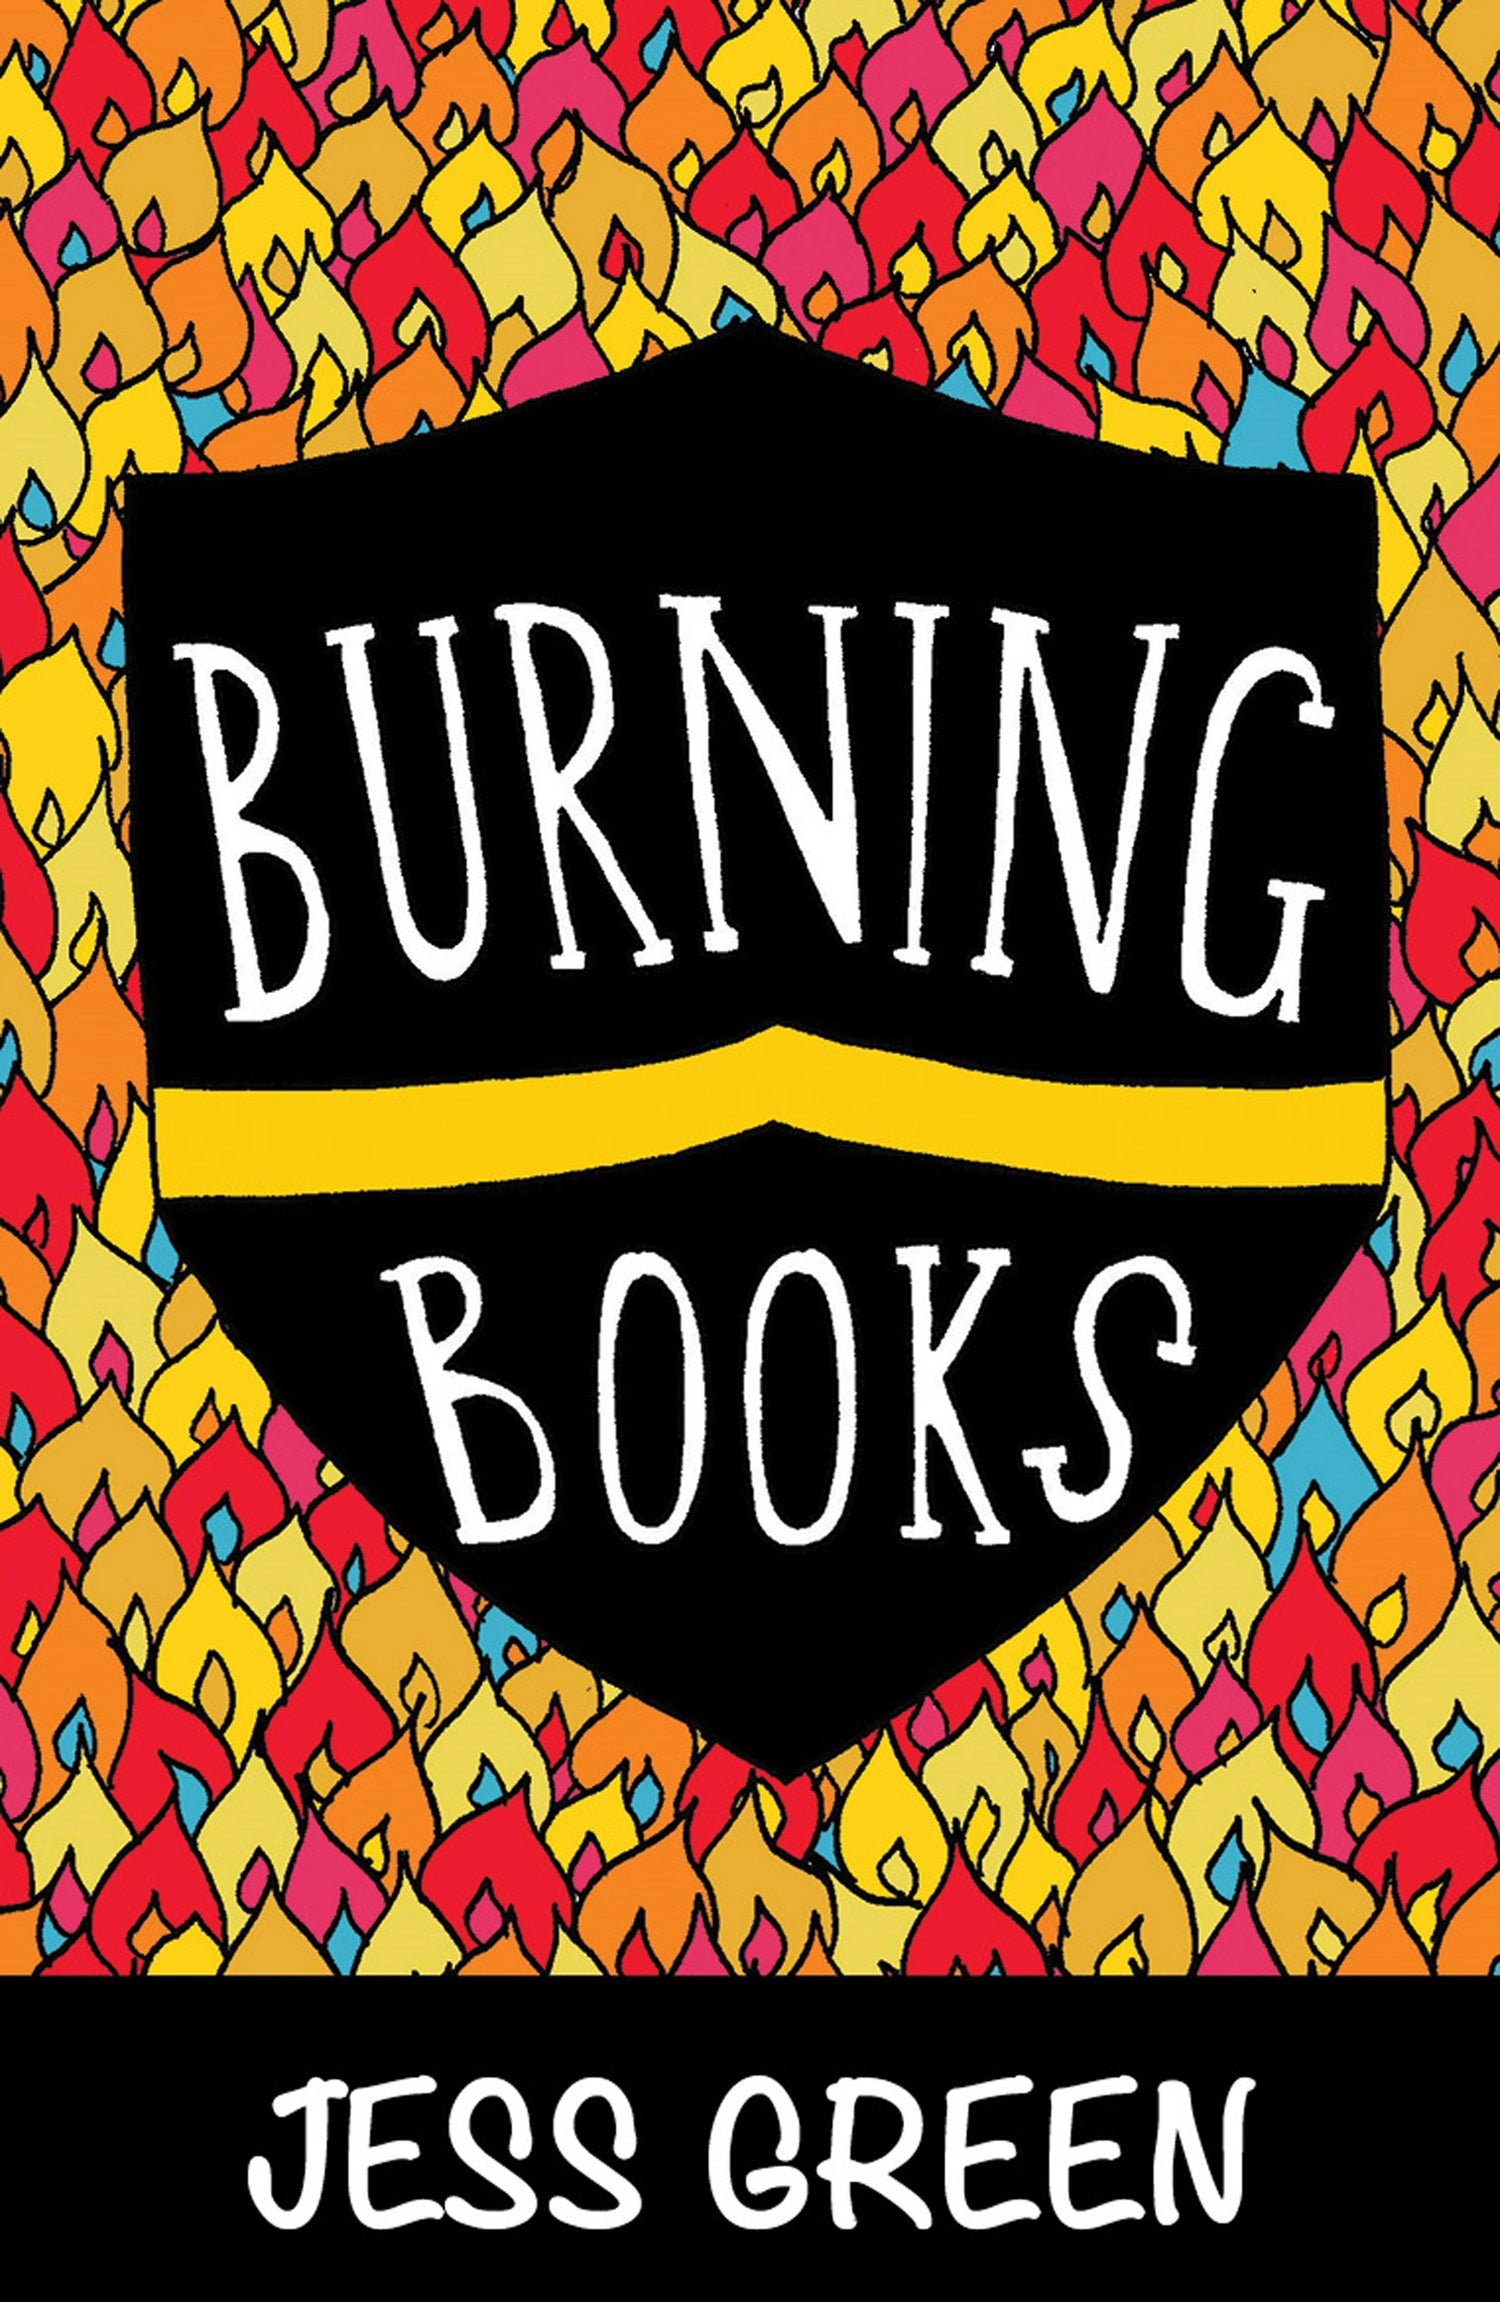 Image of Burning Books by Jess Green